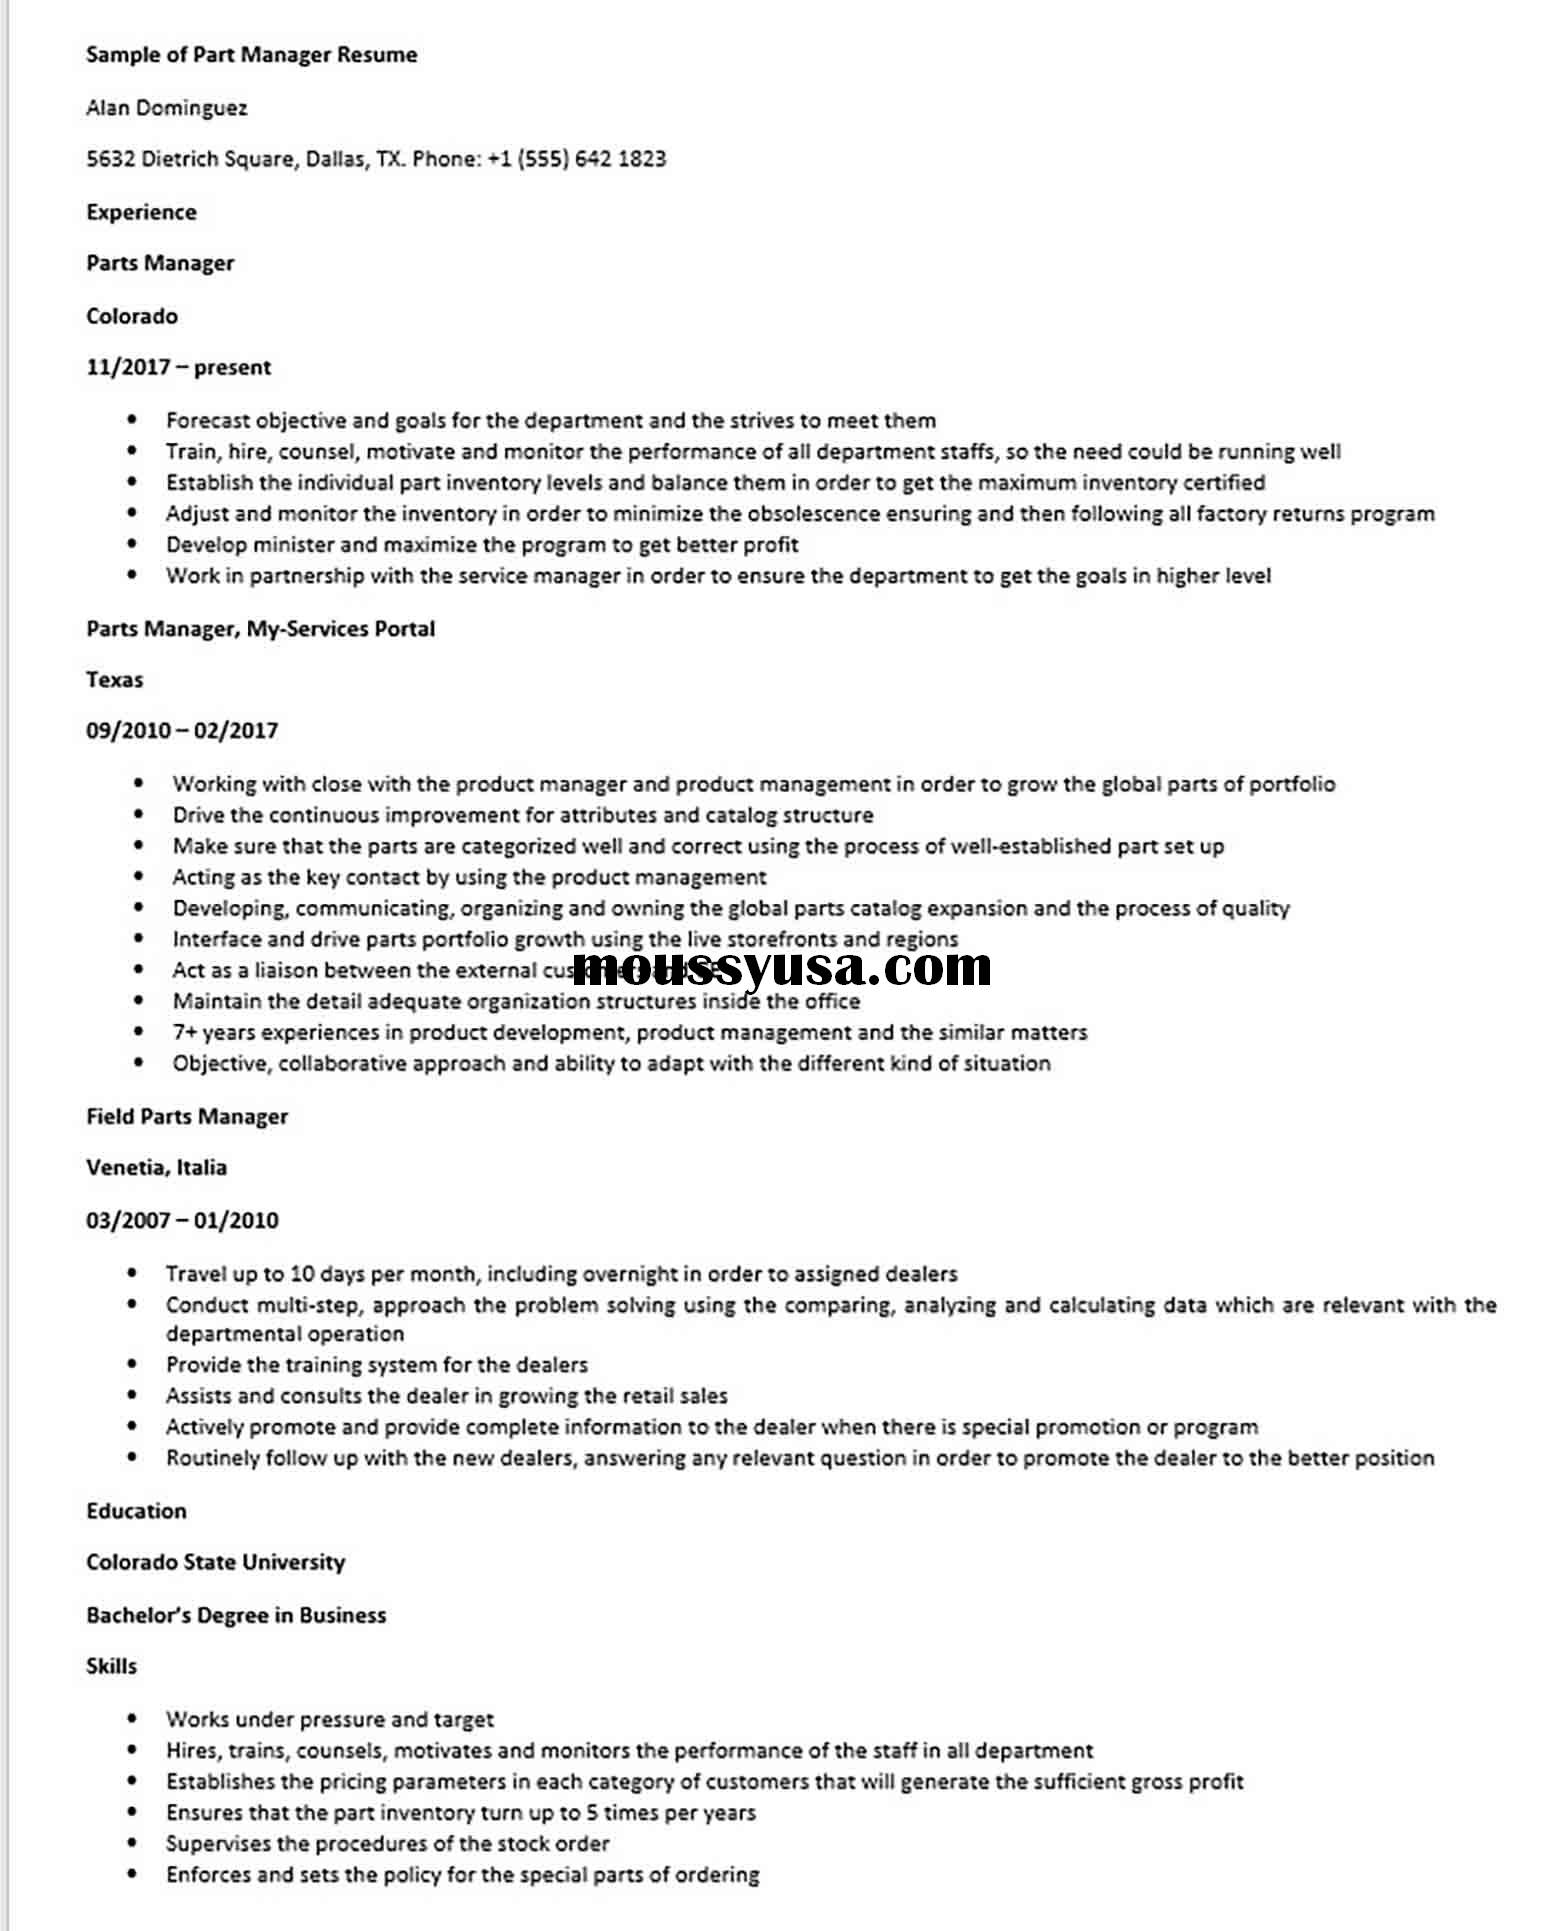 Sample of Part Manager Resume